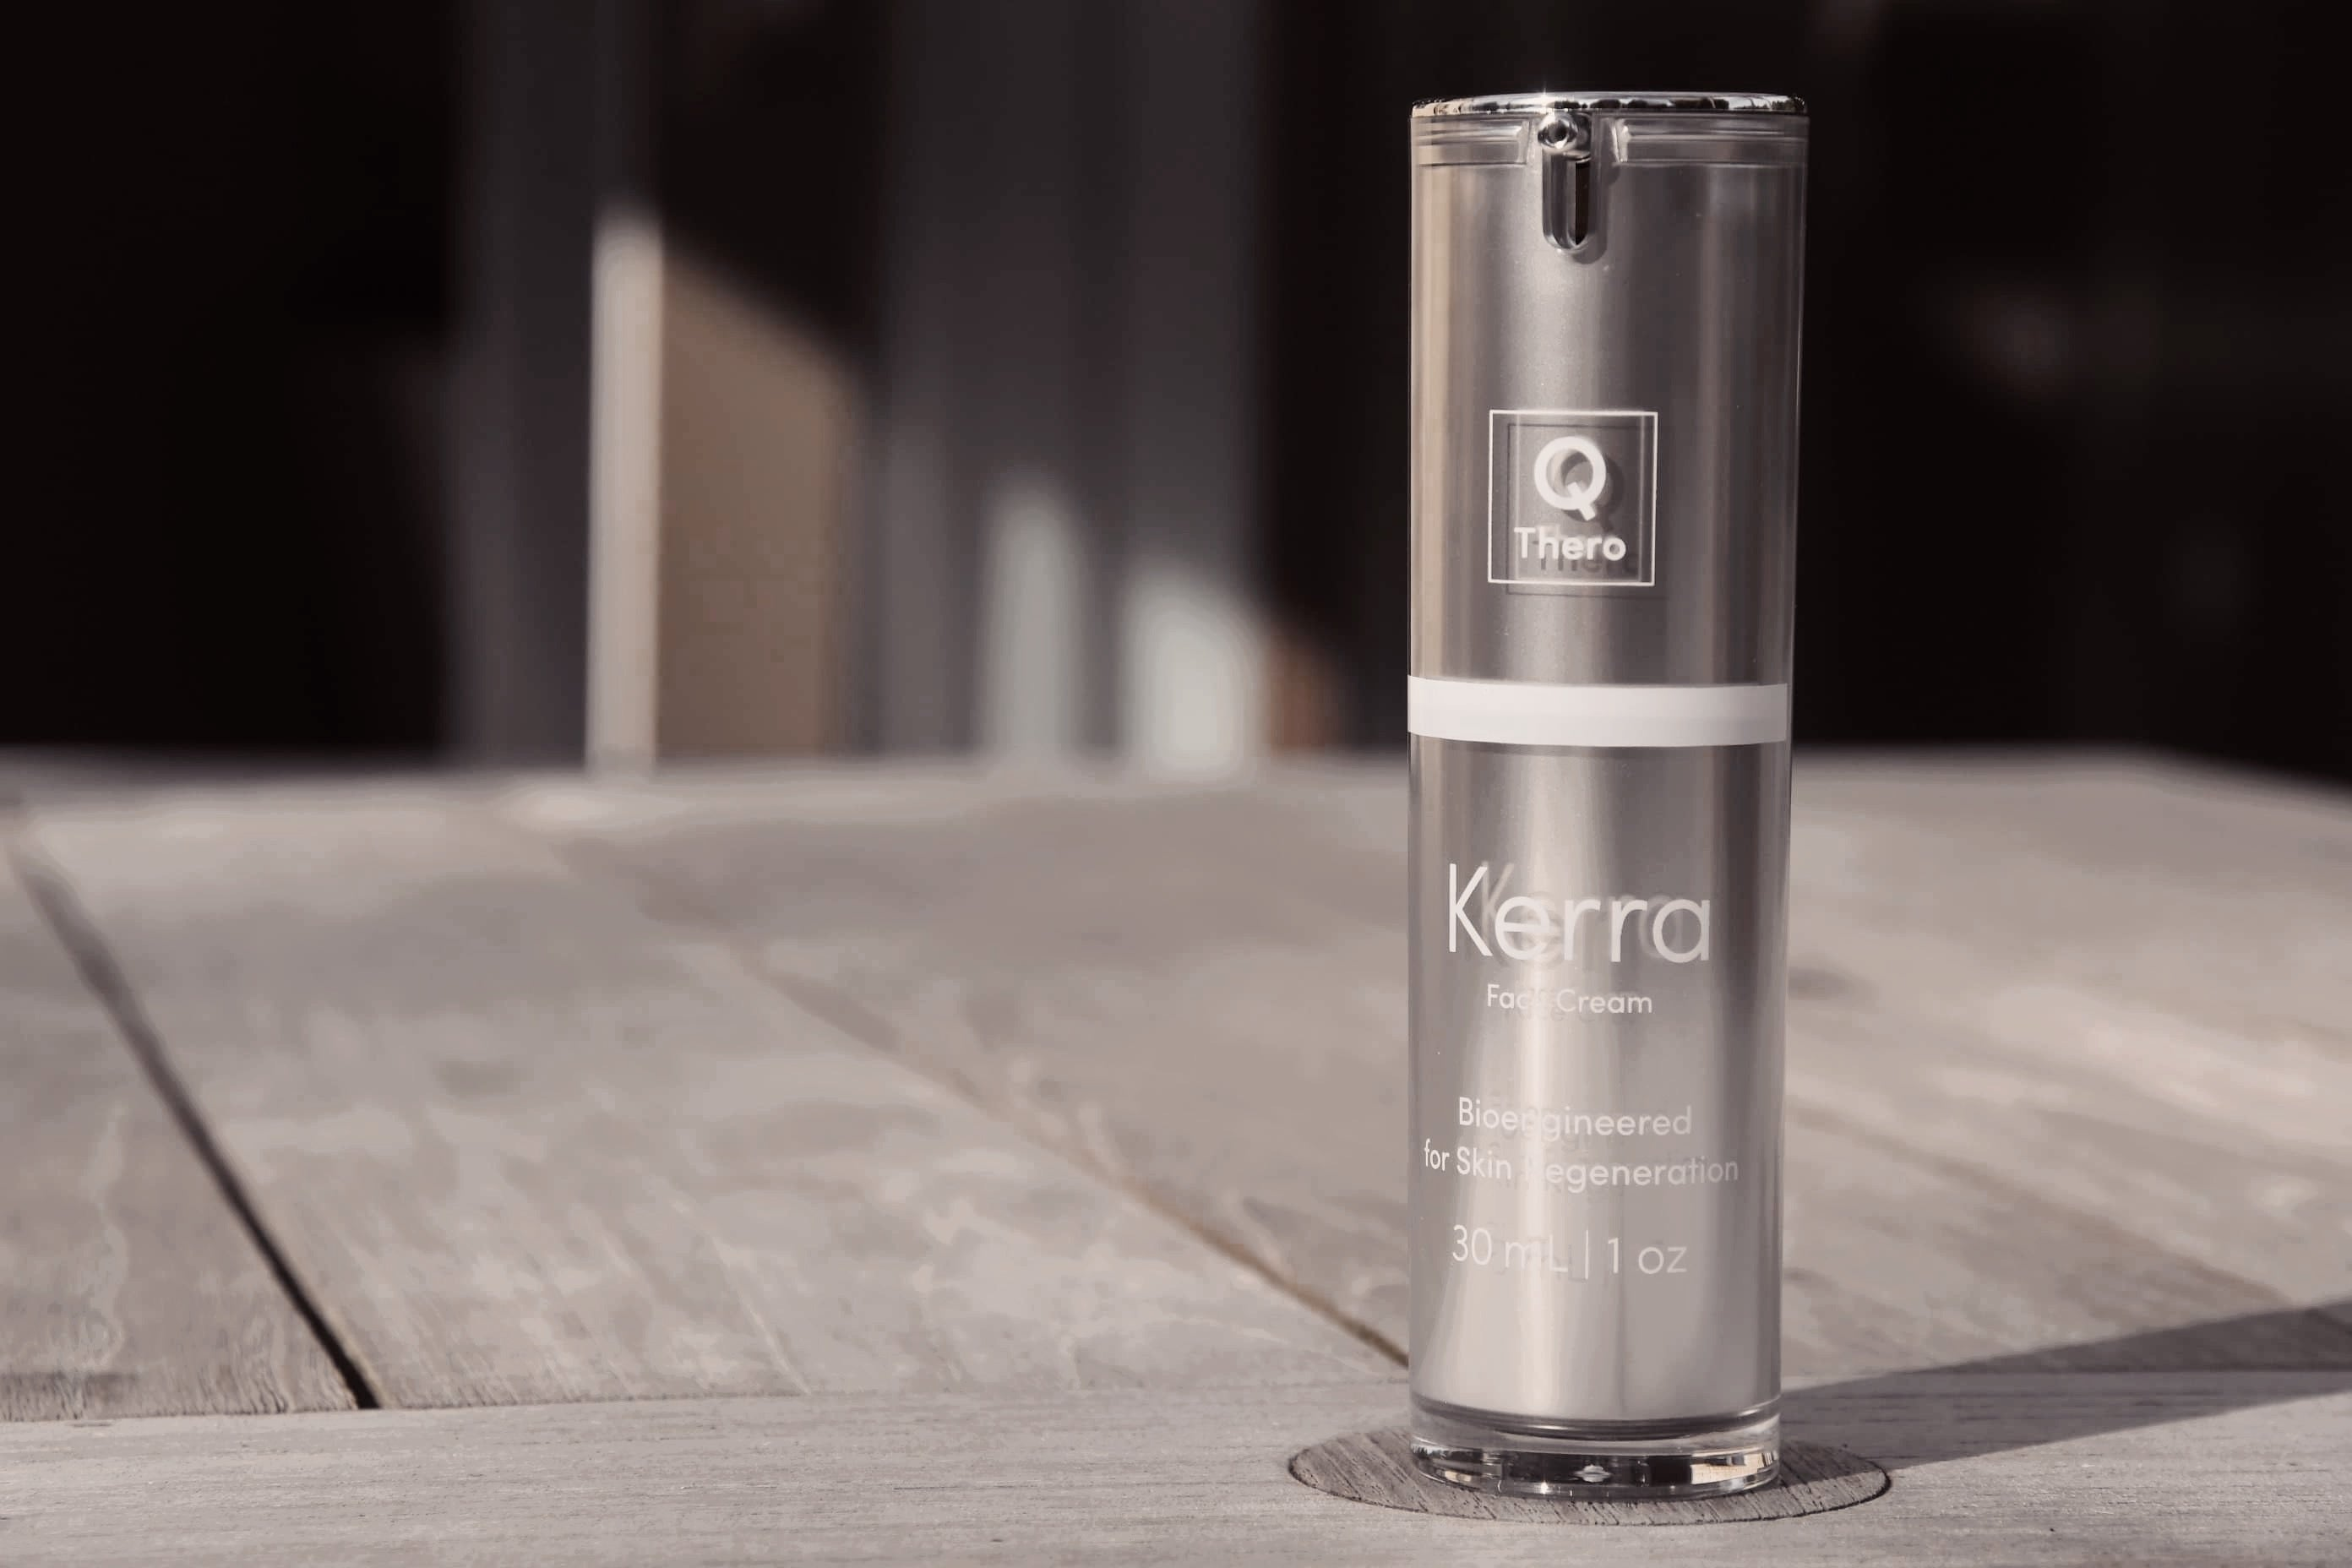 Kerra is Quthero Skincare's face cream